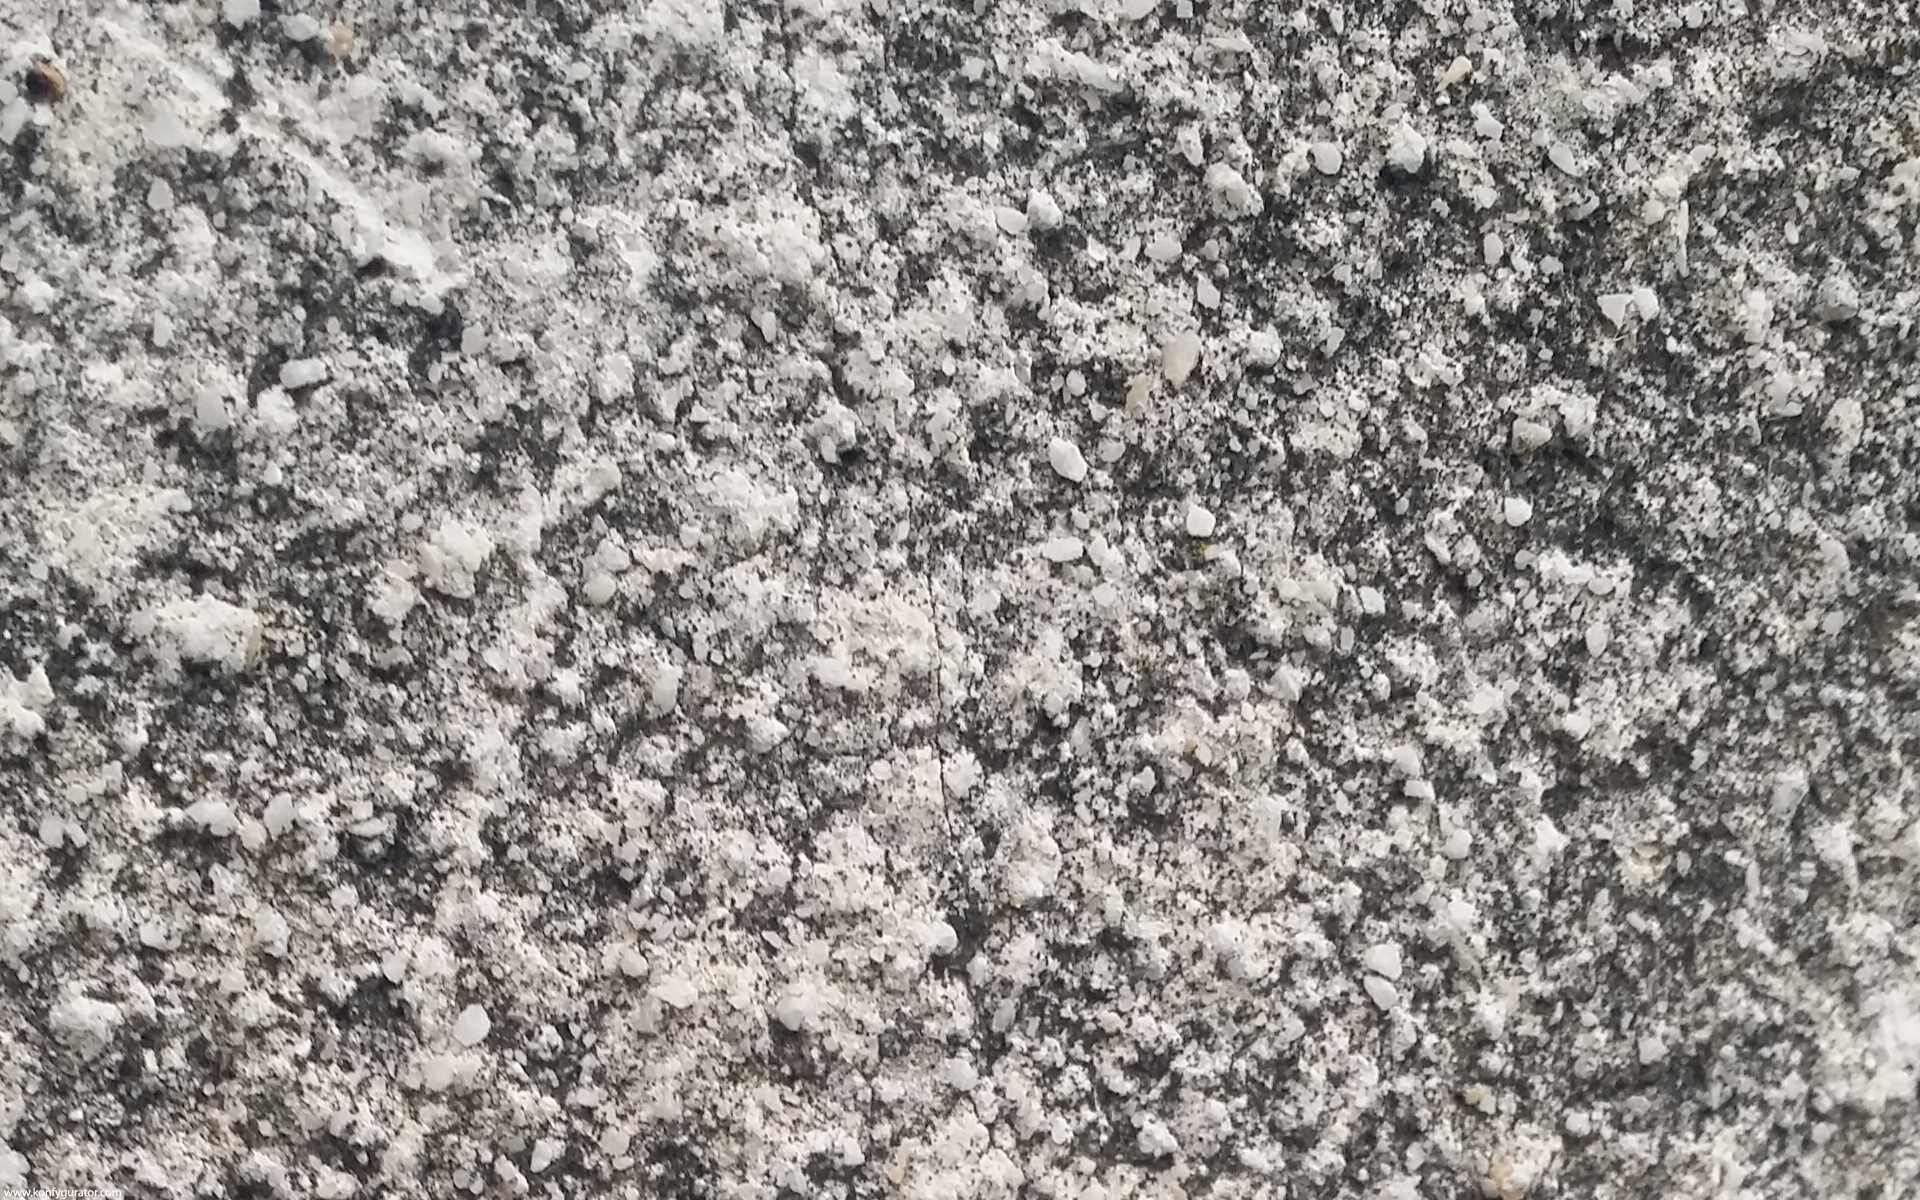 HD Wallpapers - Textures - concrete, white, black